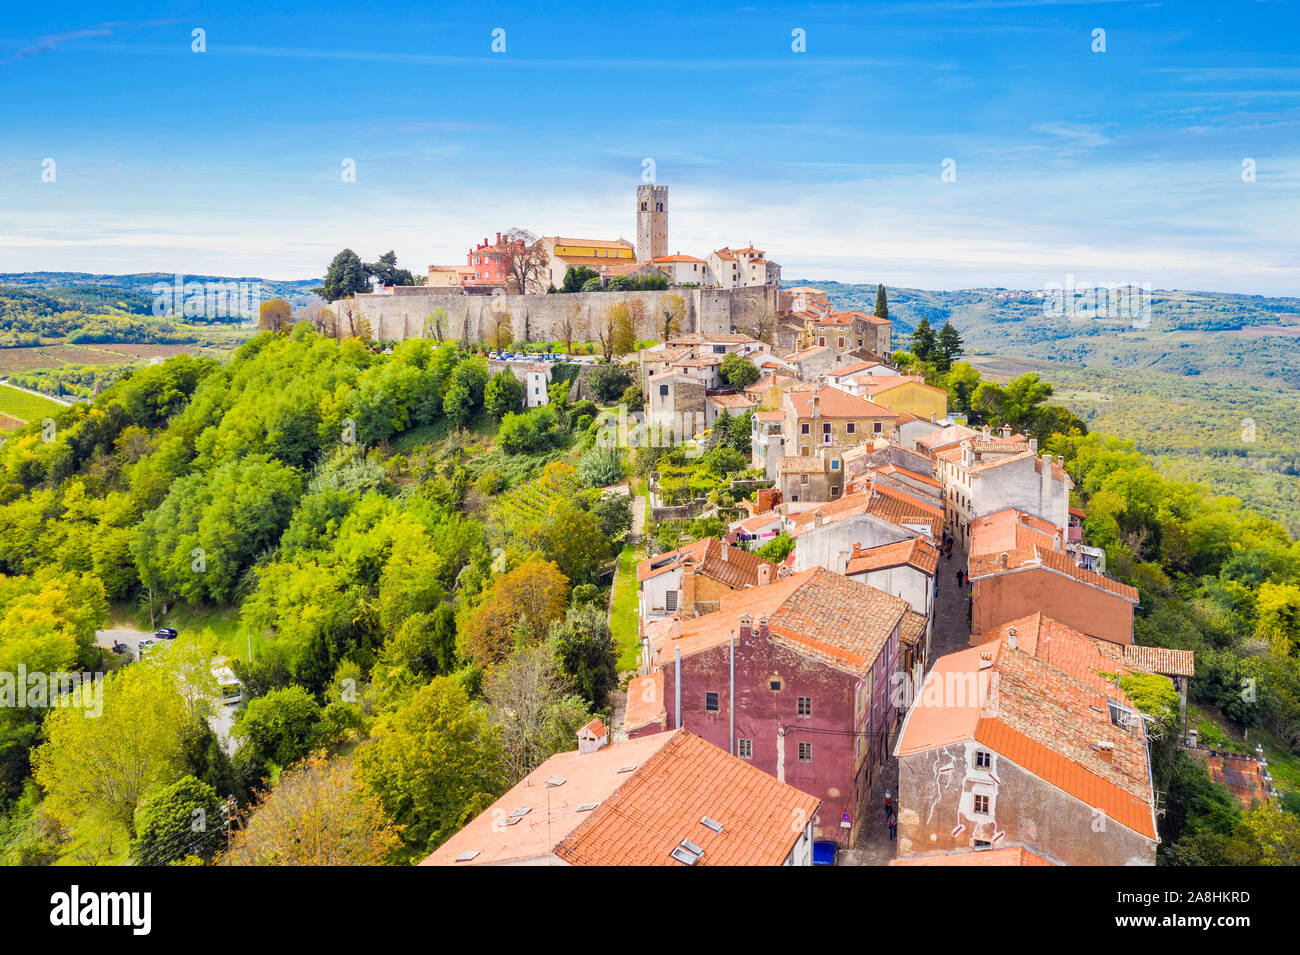 Croatia, Istria, aerial view of the old town of Motovun Stock Photo